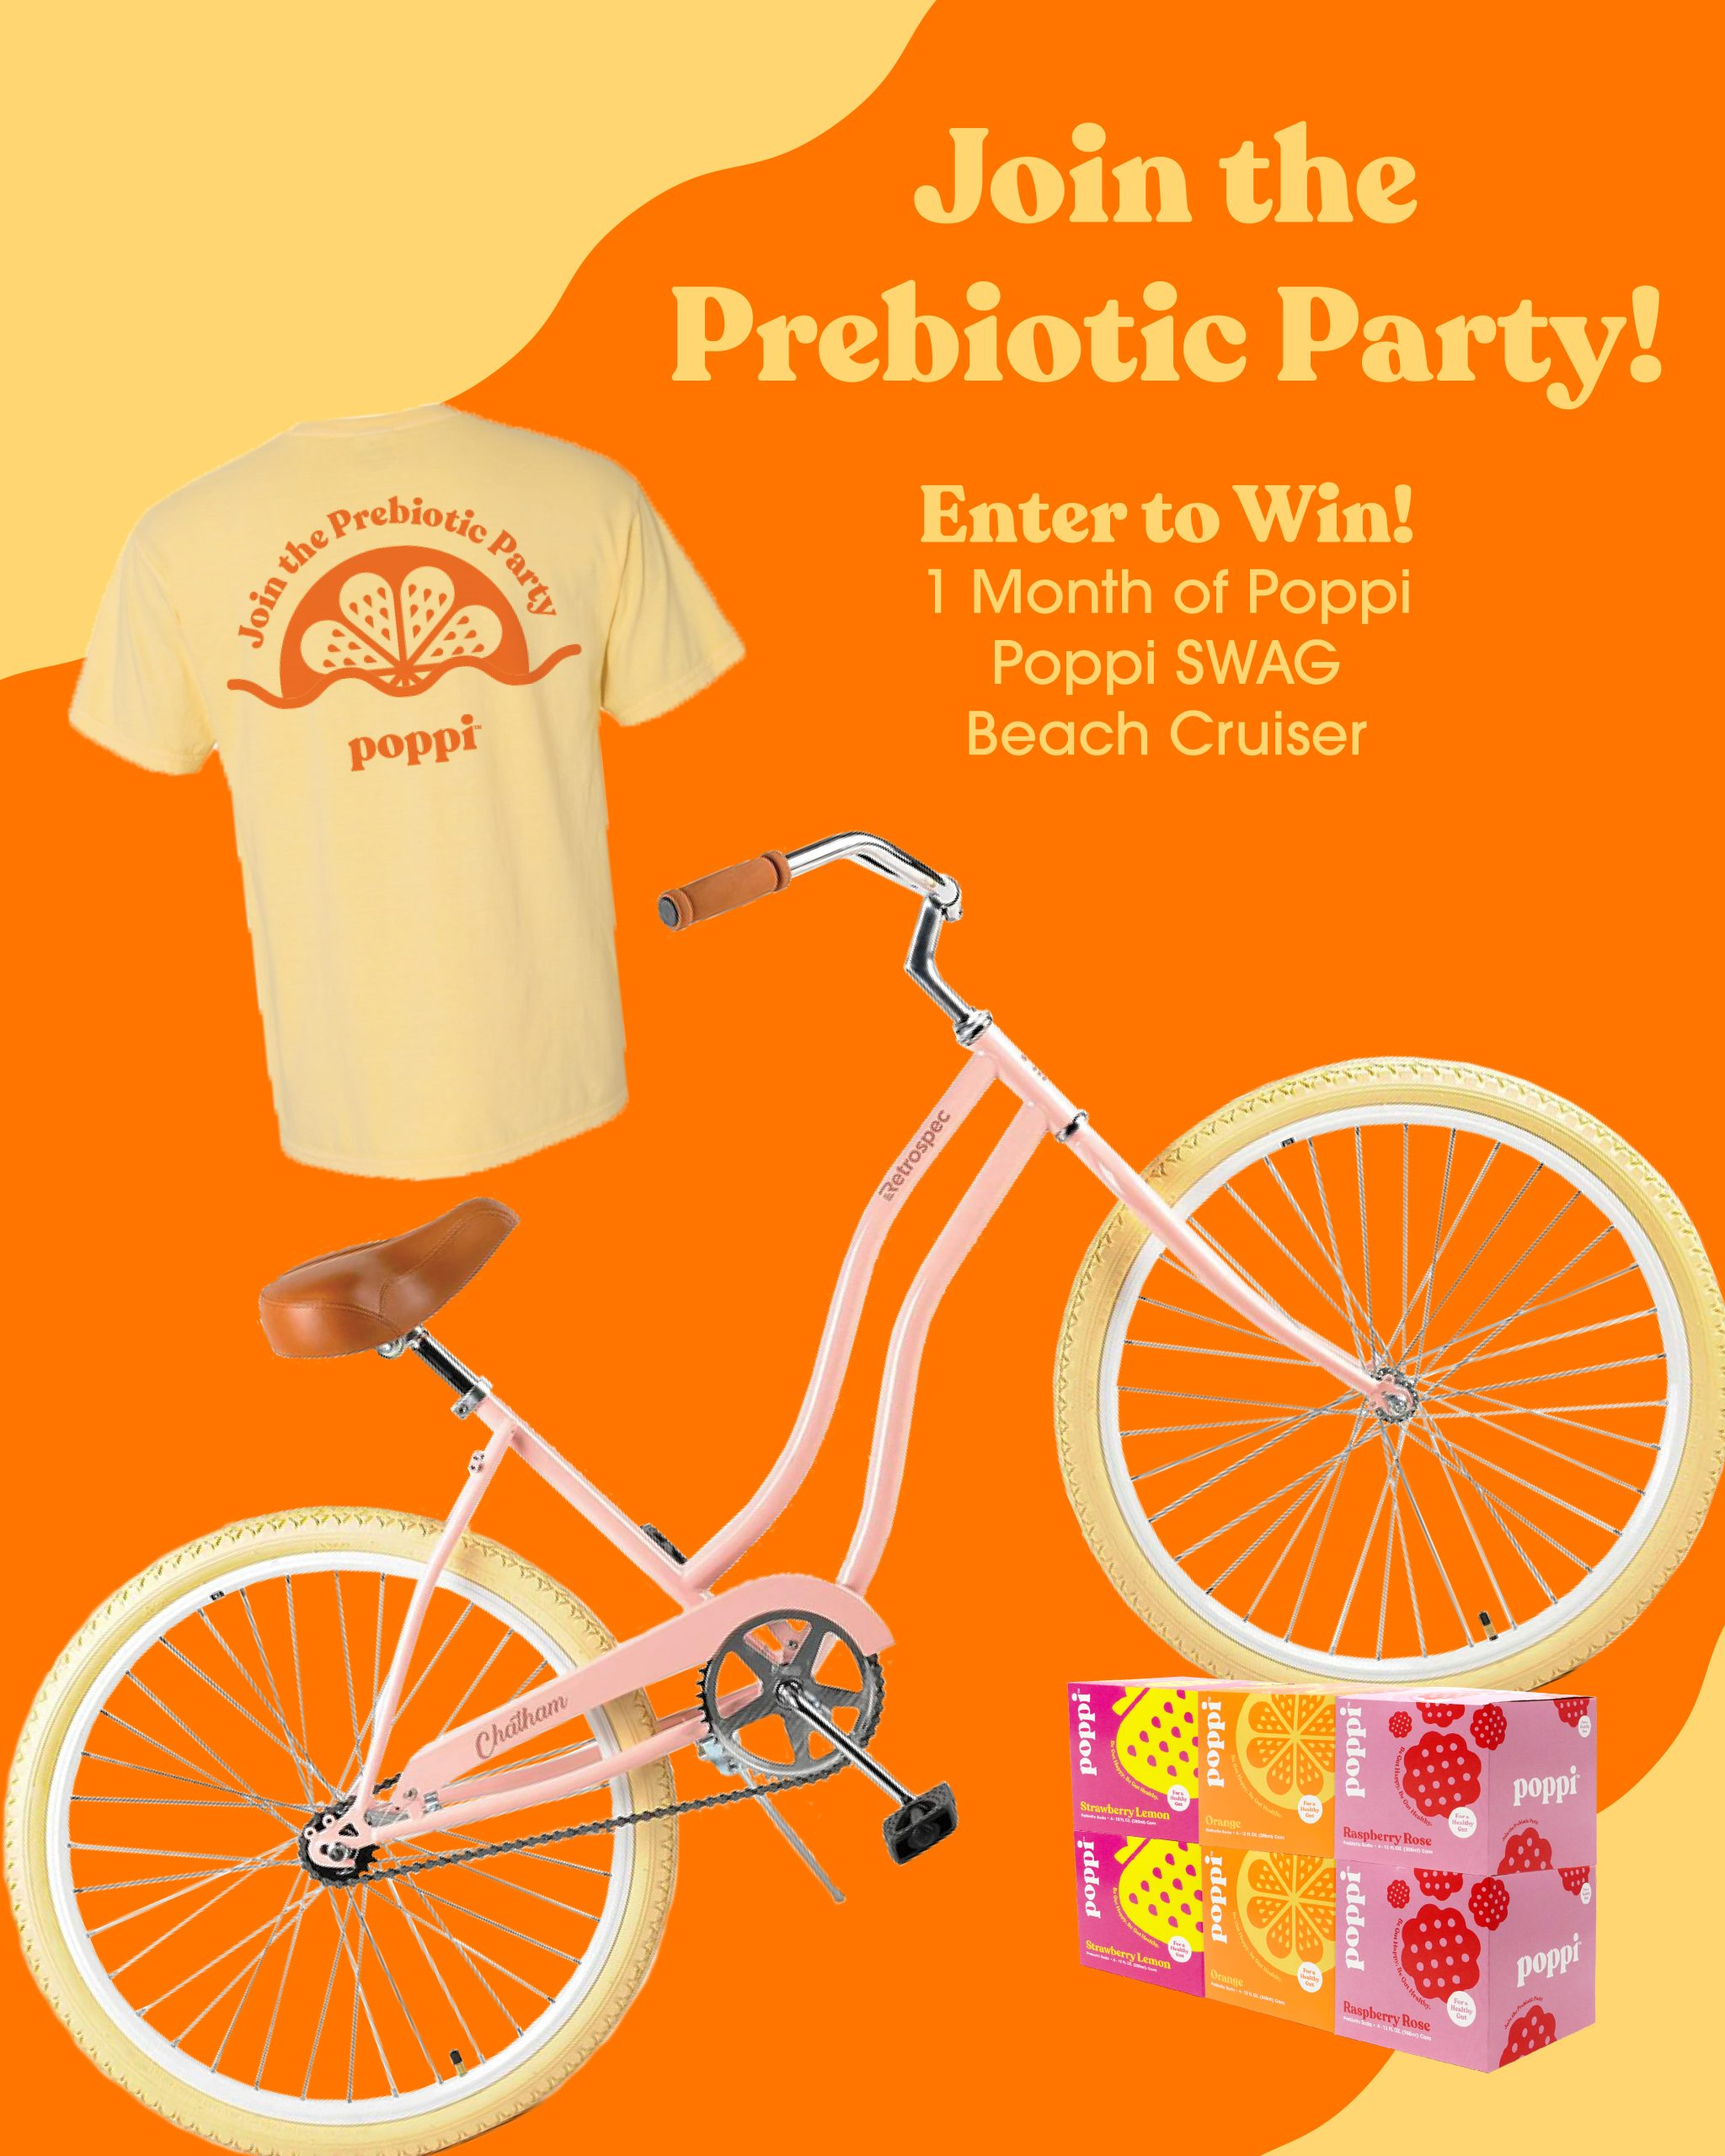 Poppi Prebiotic Soda Is Now Available At Publix + Enter To Win A Fabulous Prize Pack! on I Heart Publix